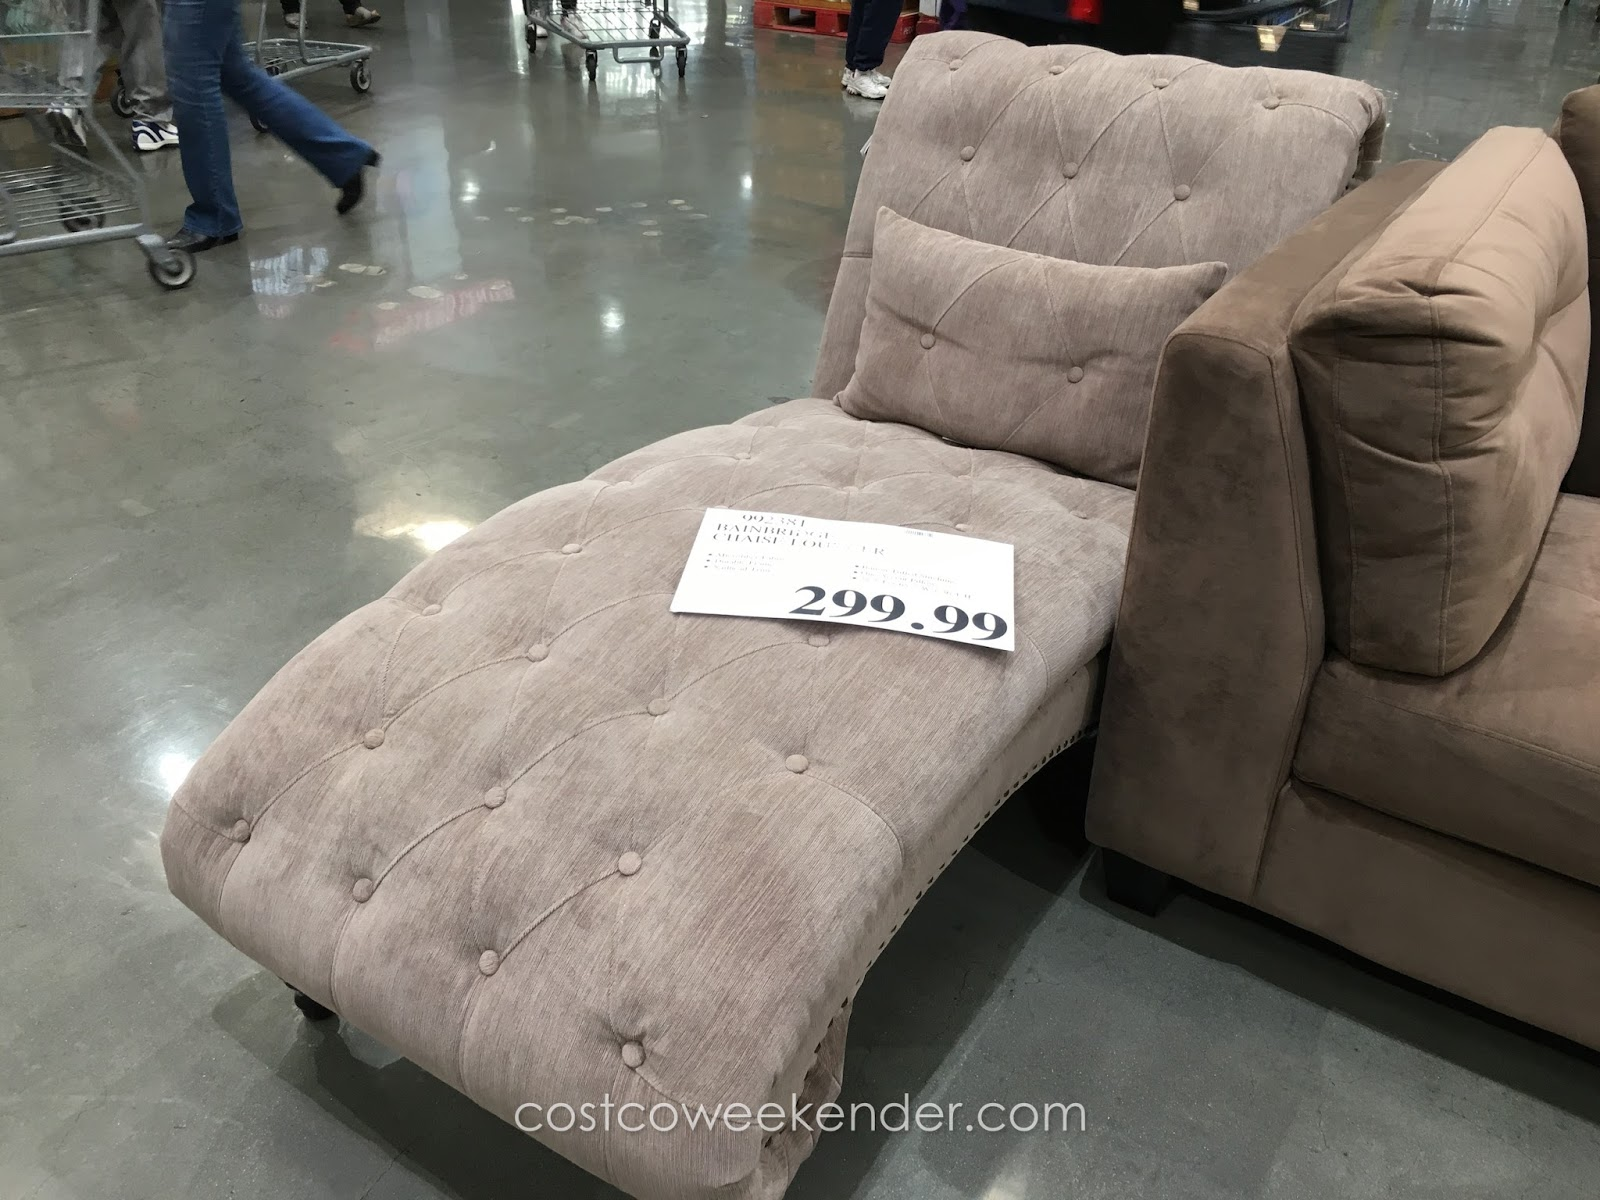 Bainbridge chaise lounger chair costco weekender for Ava chaise lounge costco